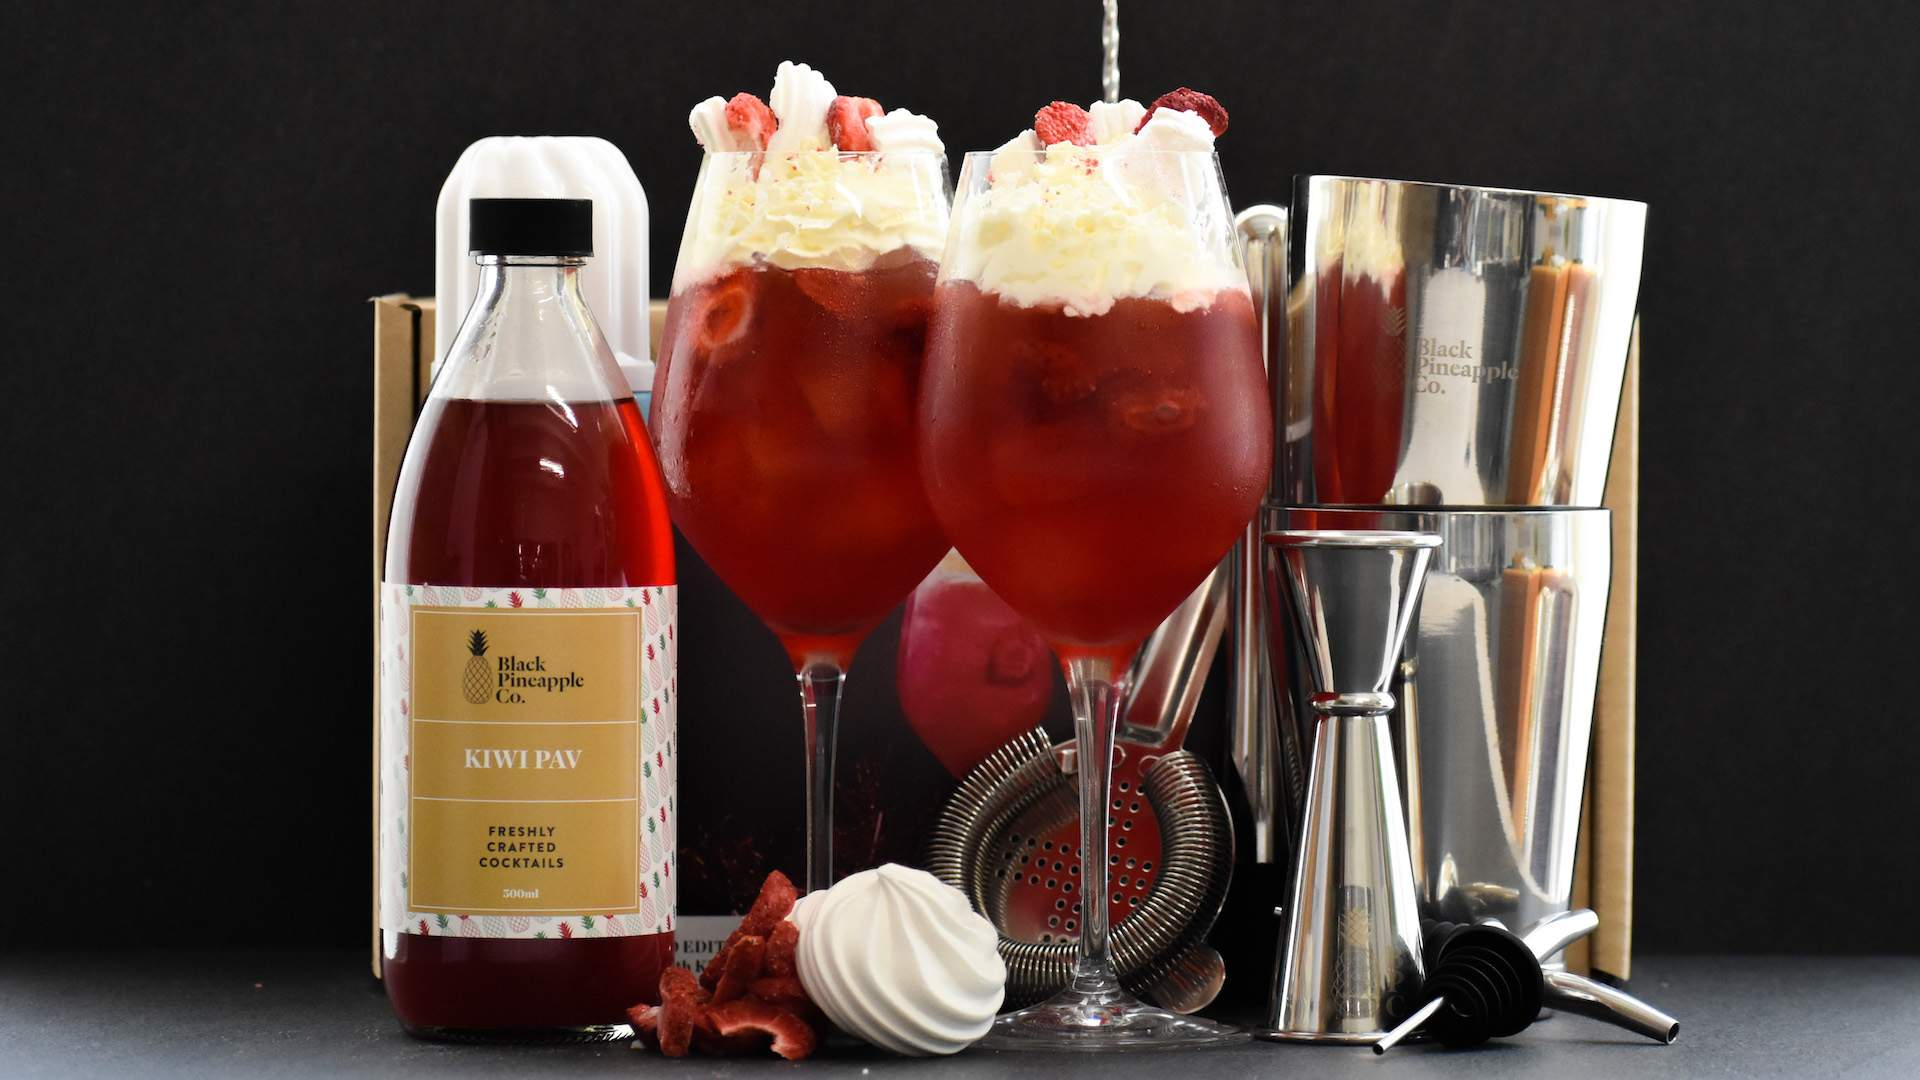 Black Pineapple Has Launched Two New Pre-Batched Christmas Cocktails